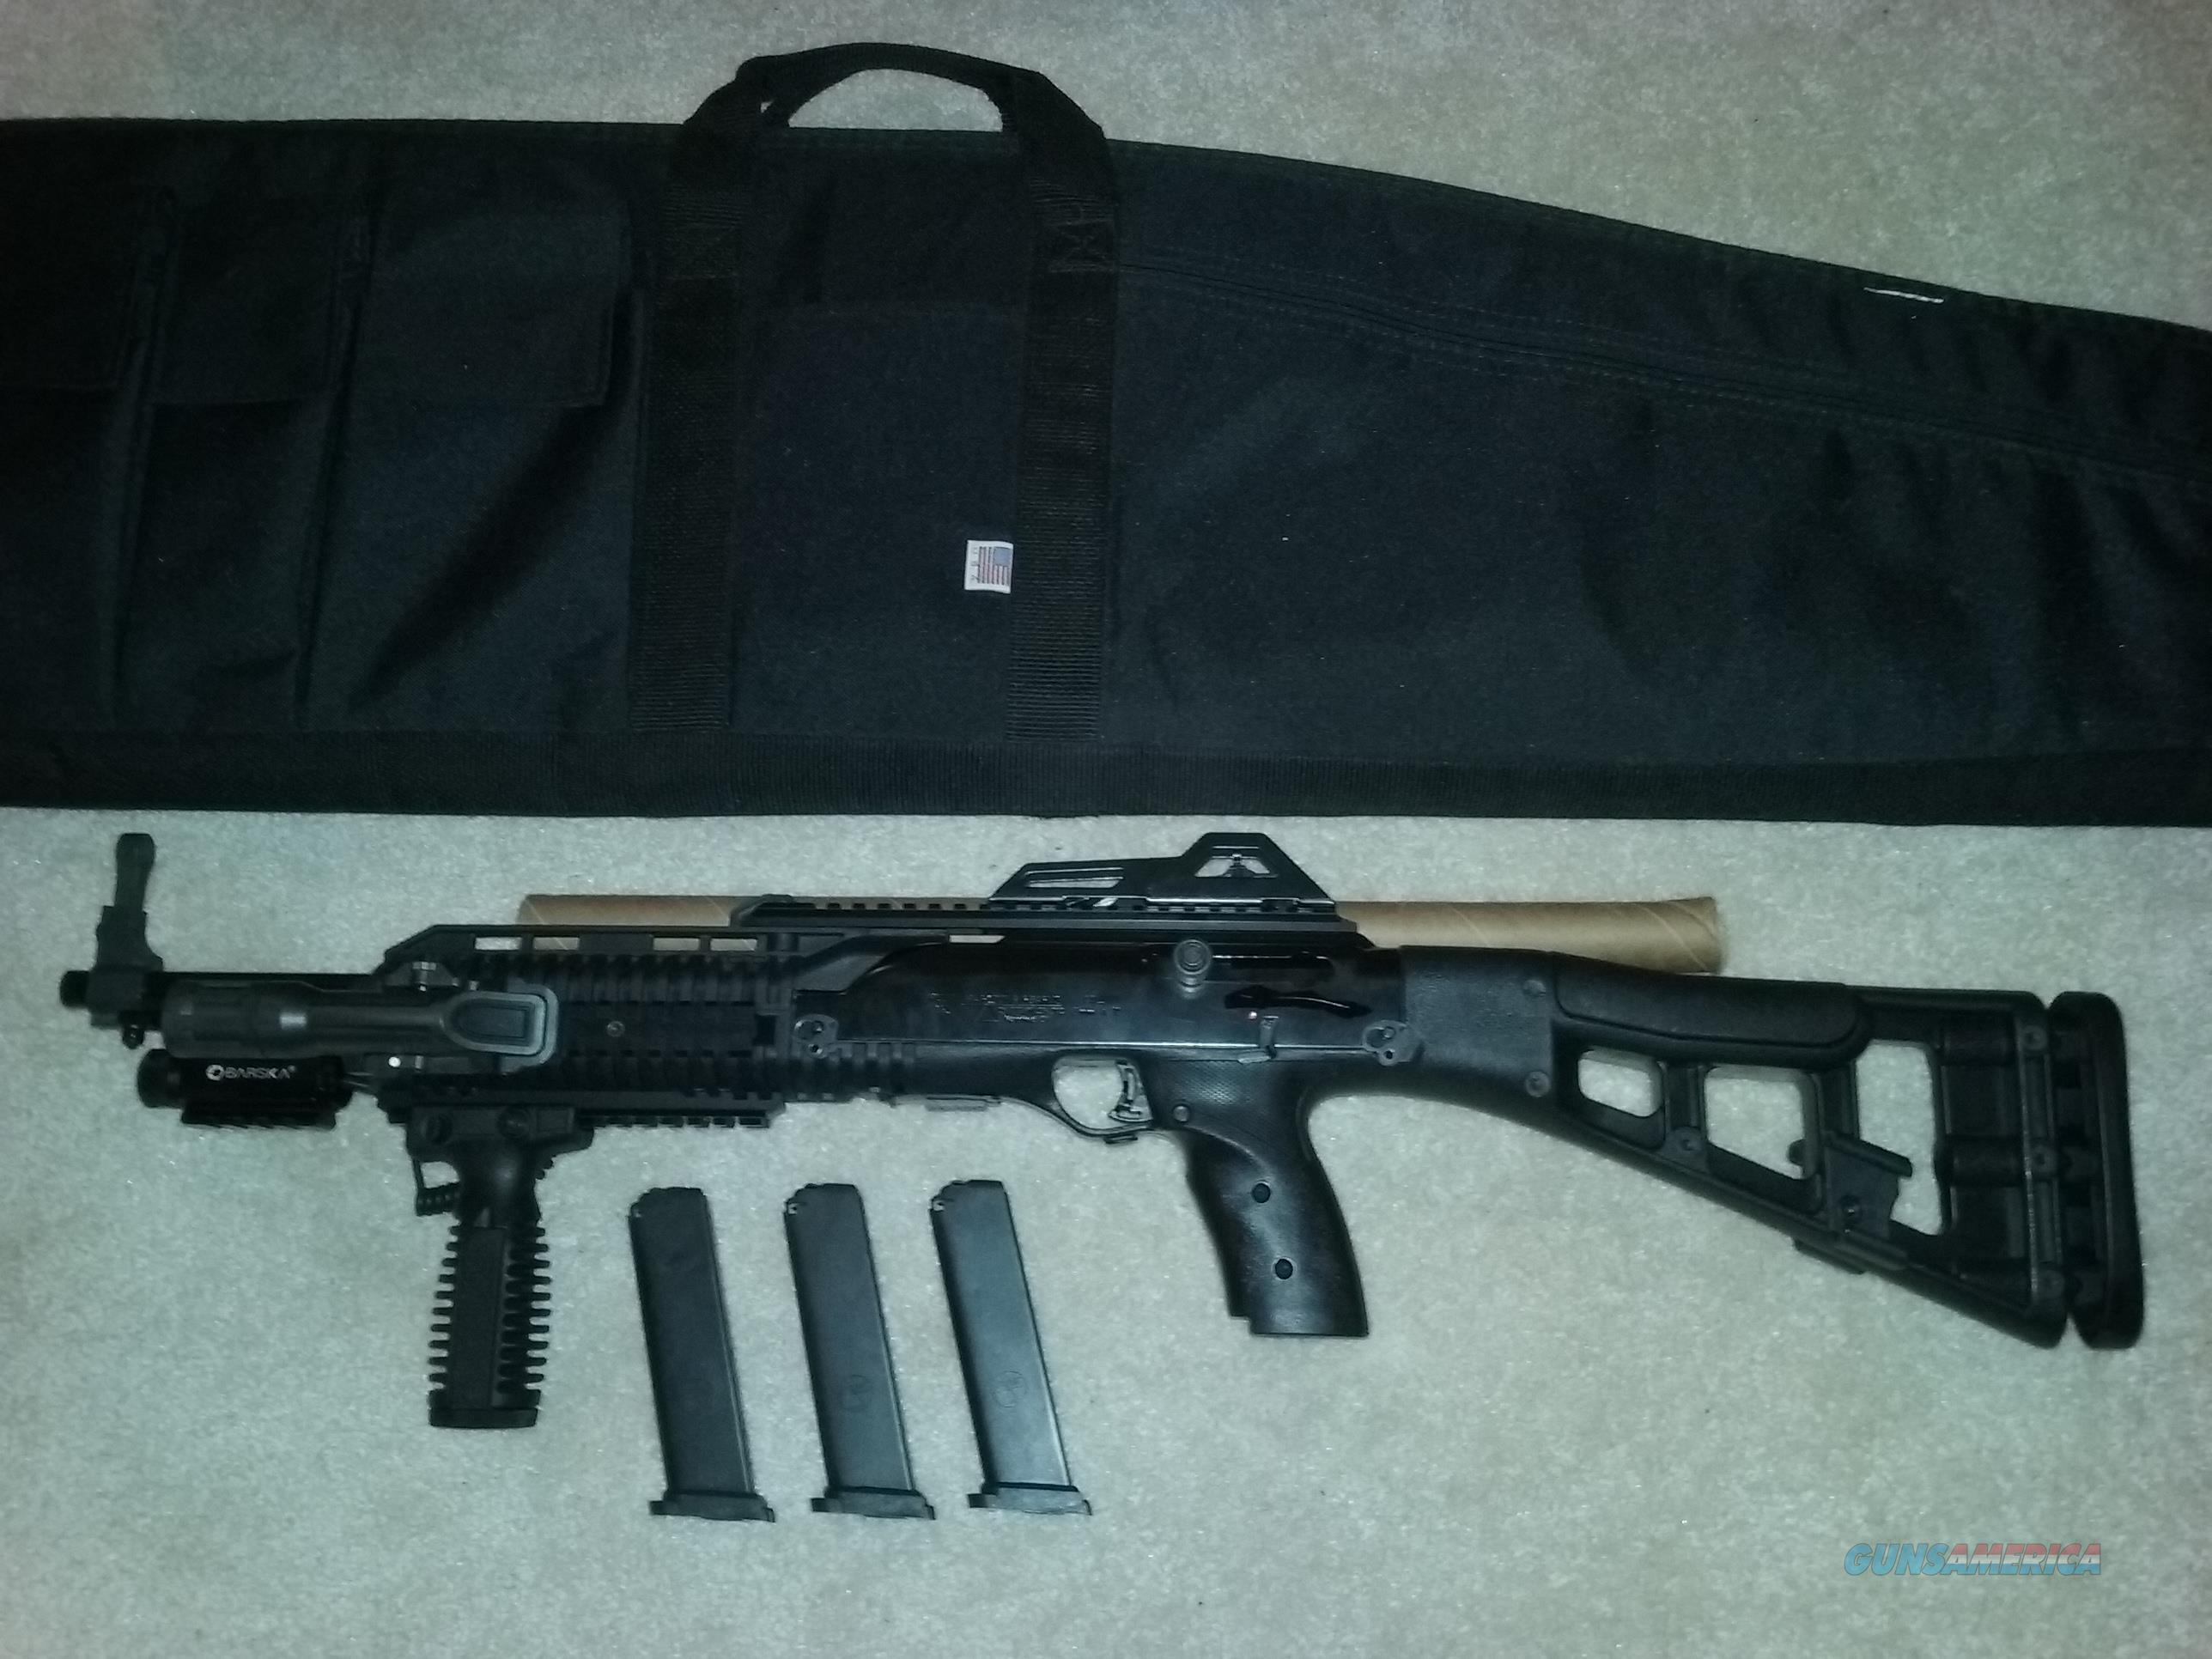 Hi-Point 9mm Rifle 995TS 3 Mags, Laser, Vert  Grip, Soft Case, Tac  Light  Available